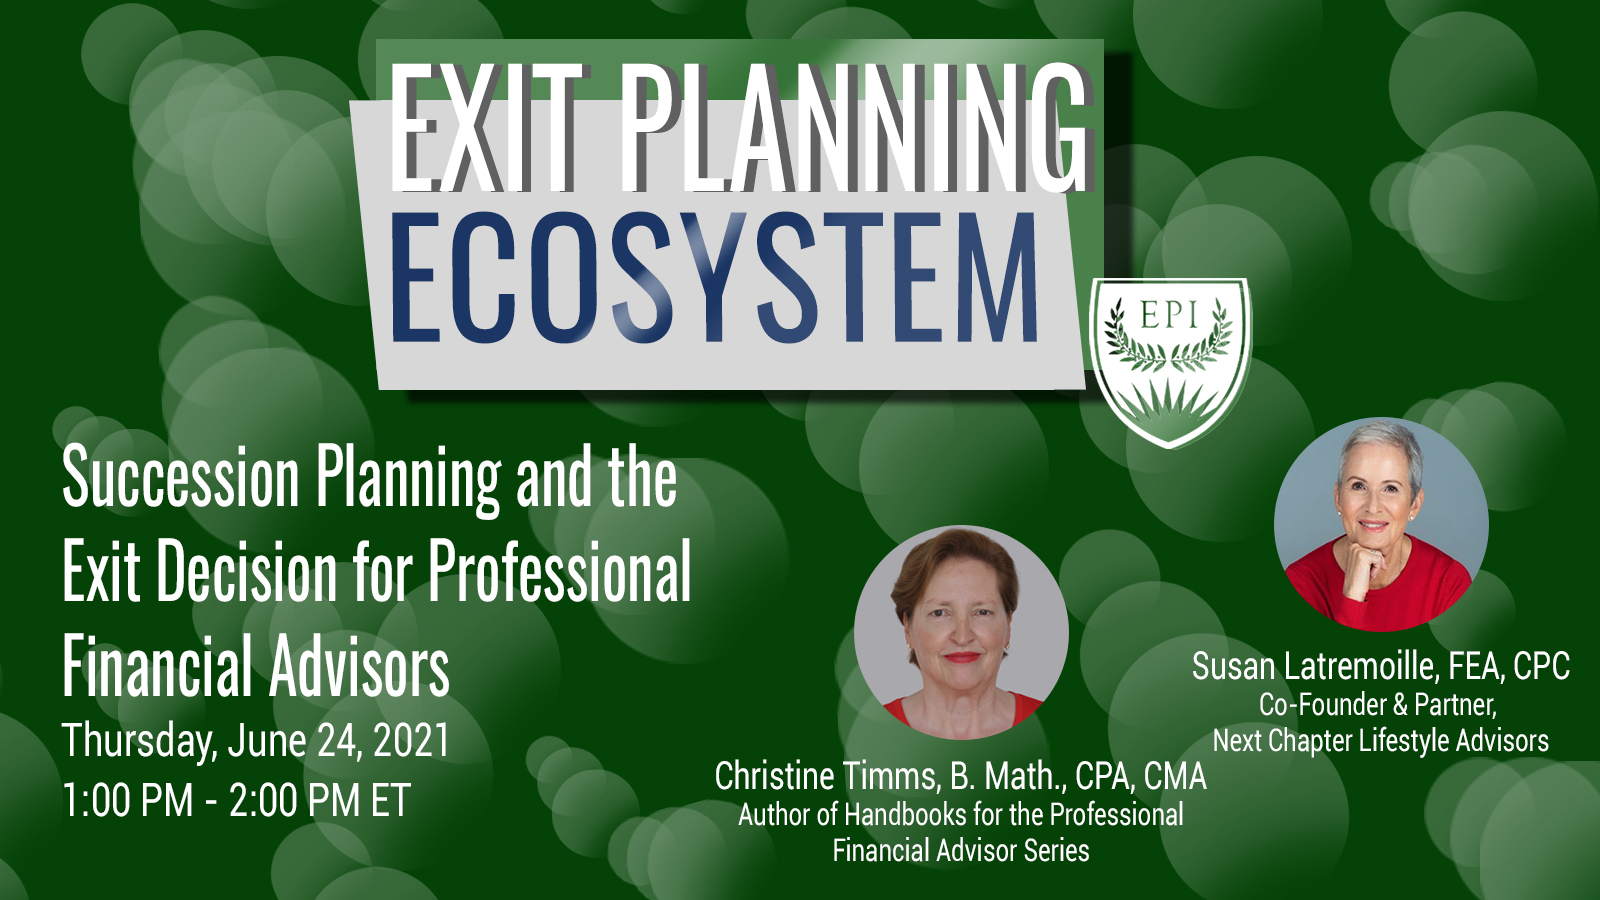 Succession Planning and the Exit Decision